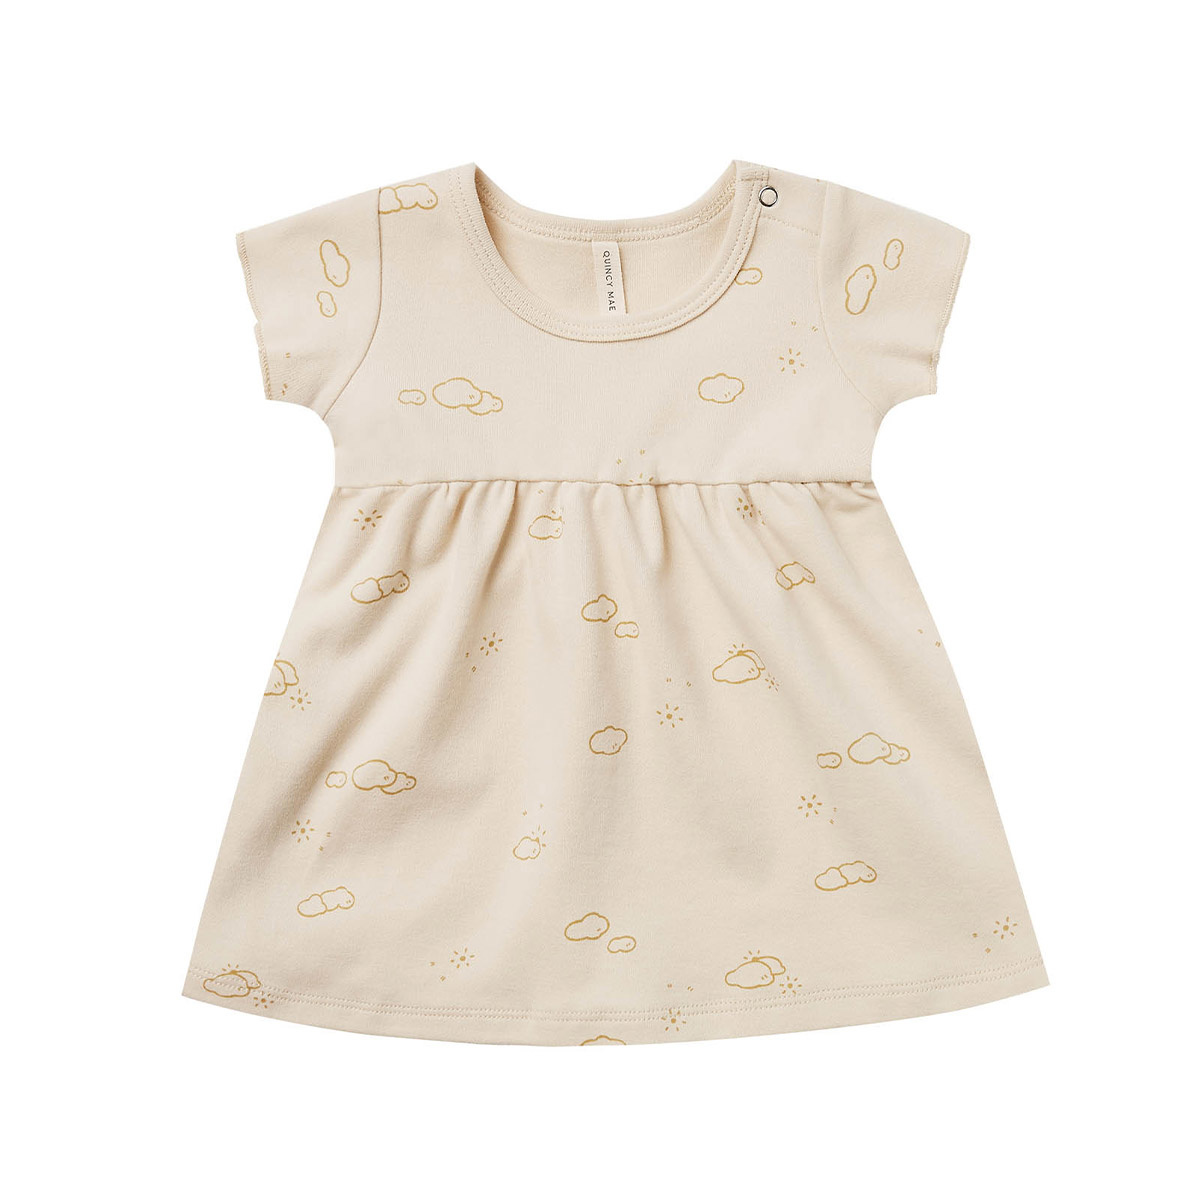 Quincy Mae Quincy Mae Organic Cotton Dress - Natural